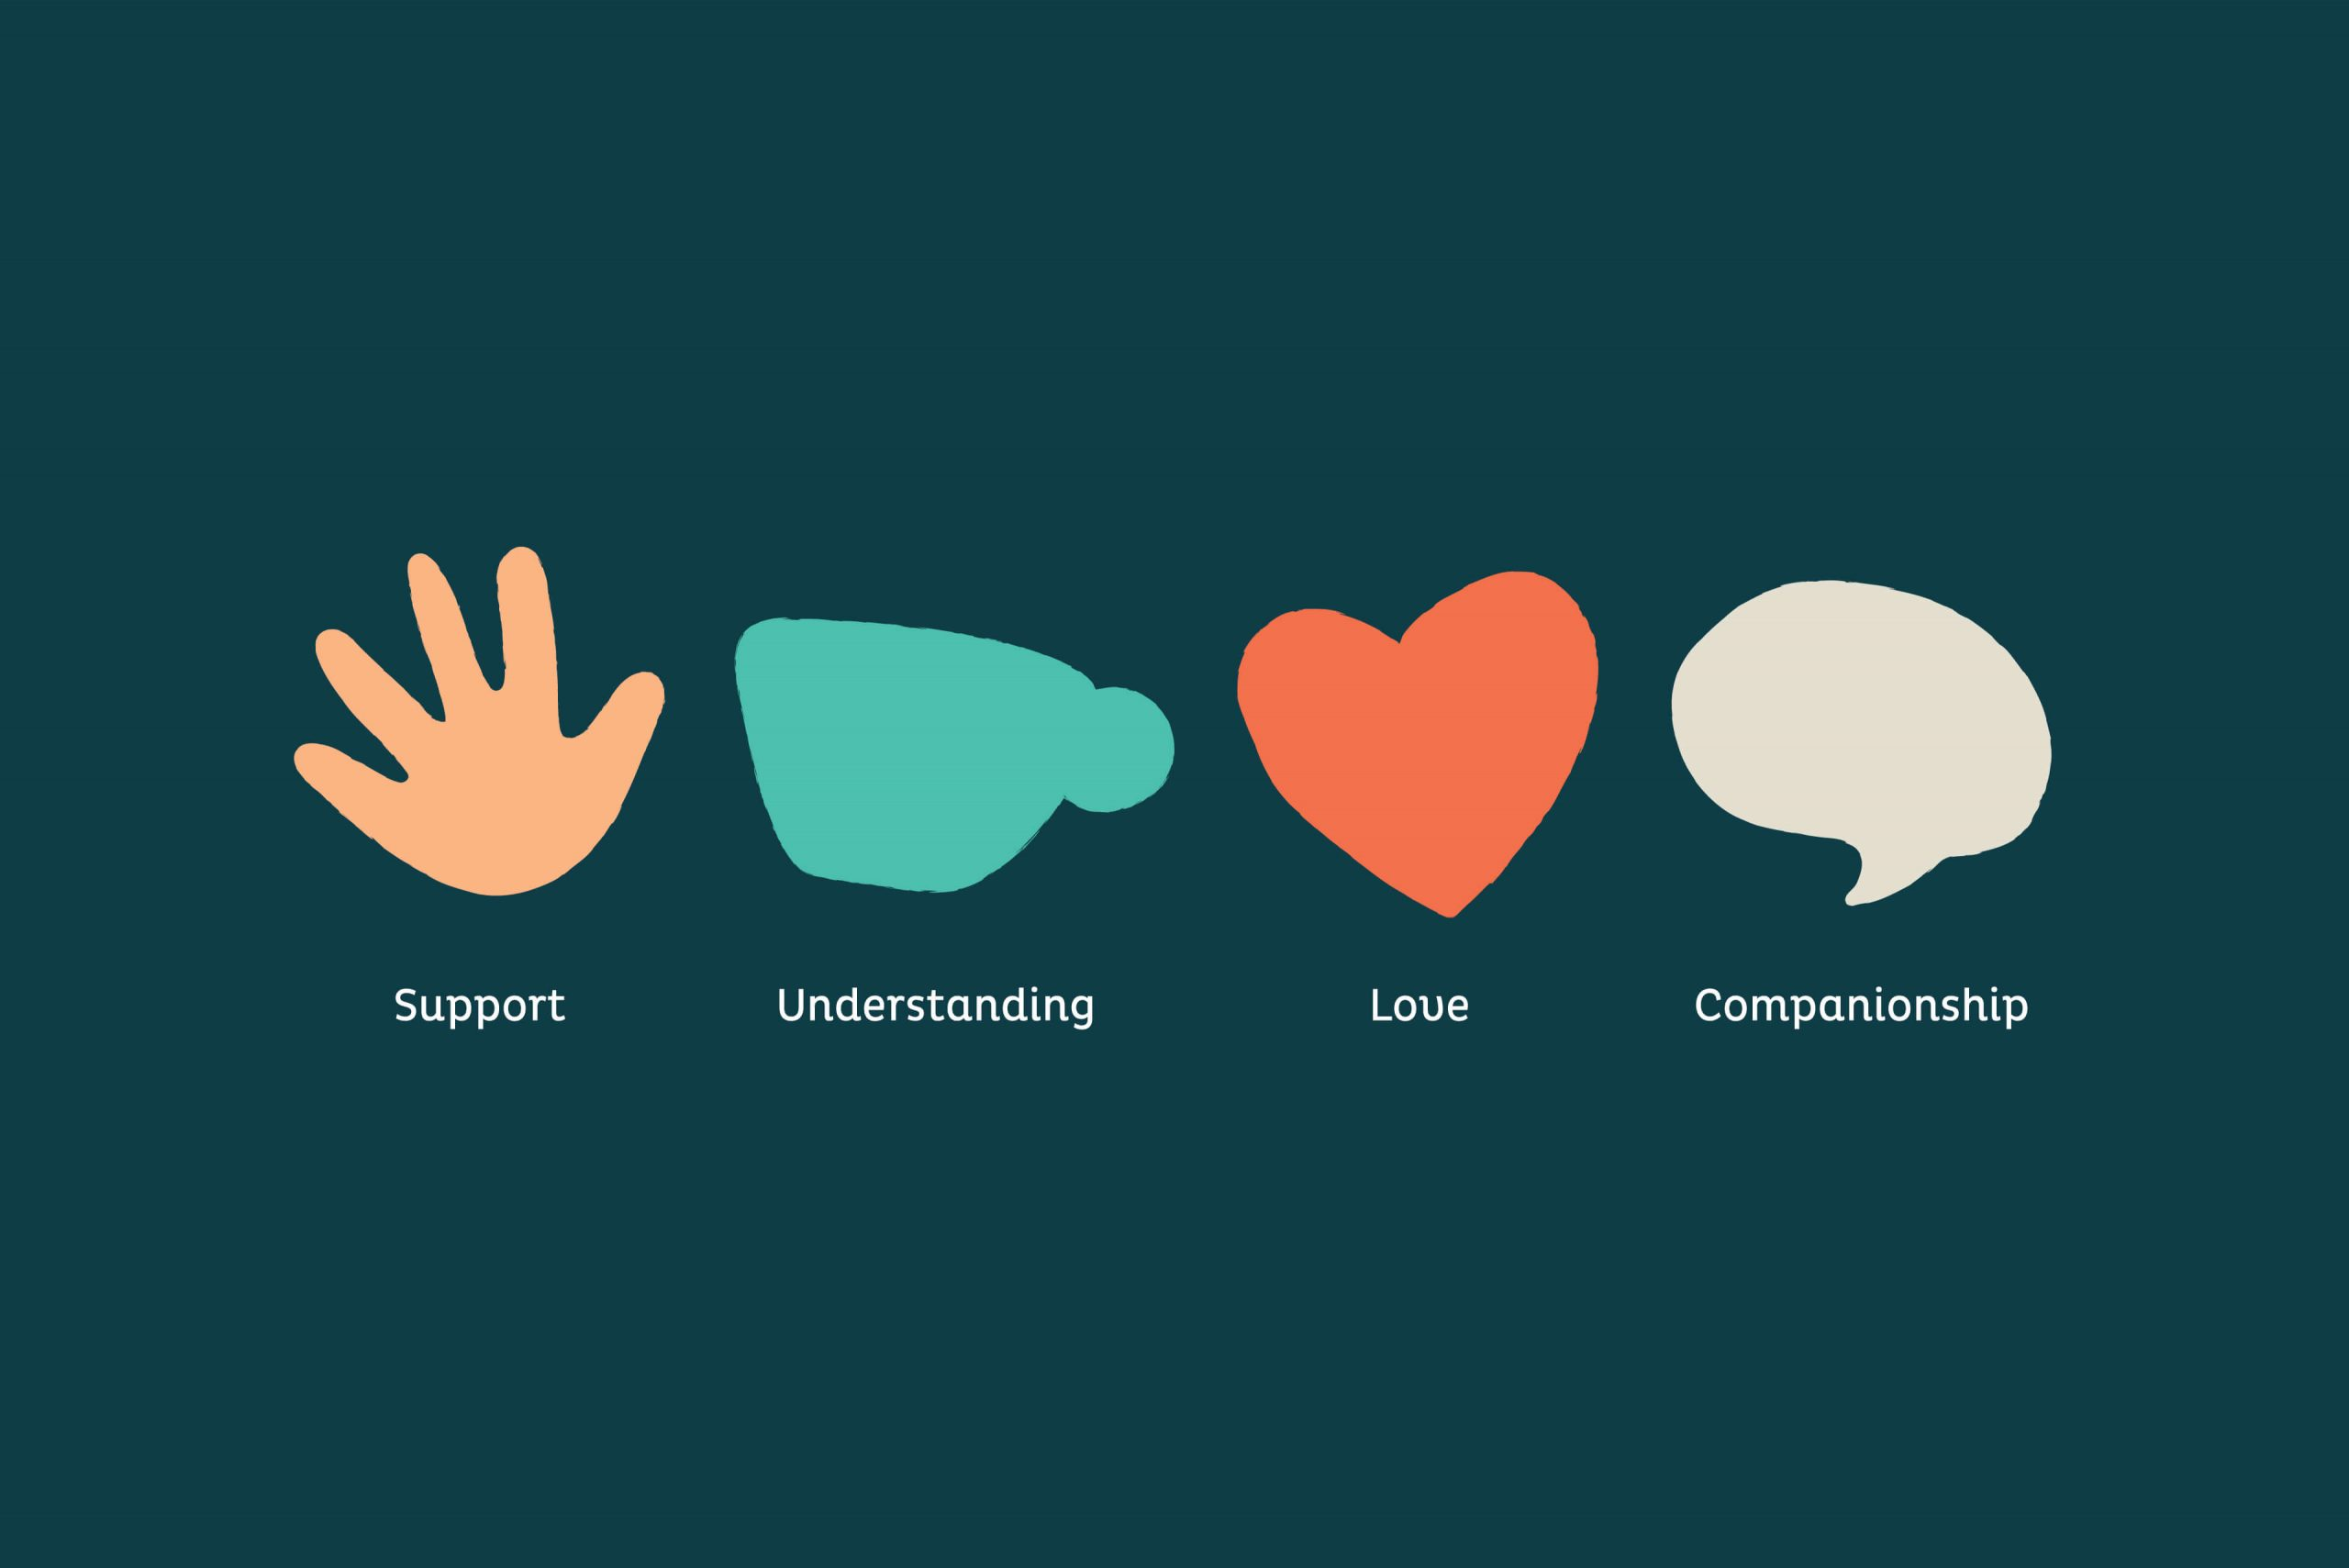 Whiddon Brand Refresh - Core brand shapes: Support, Understanding, Love, Companionship